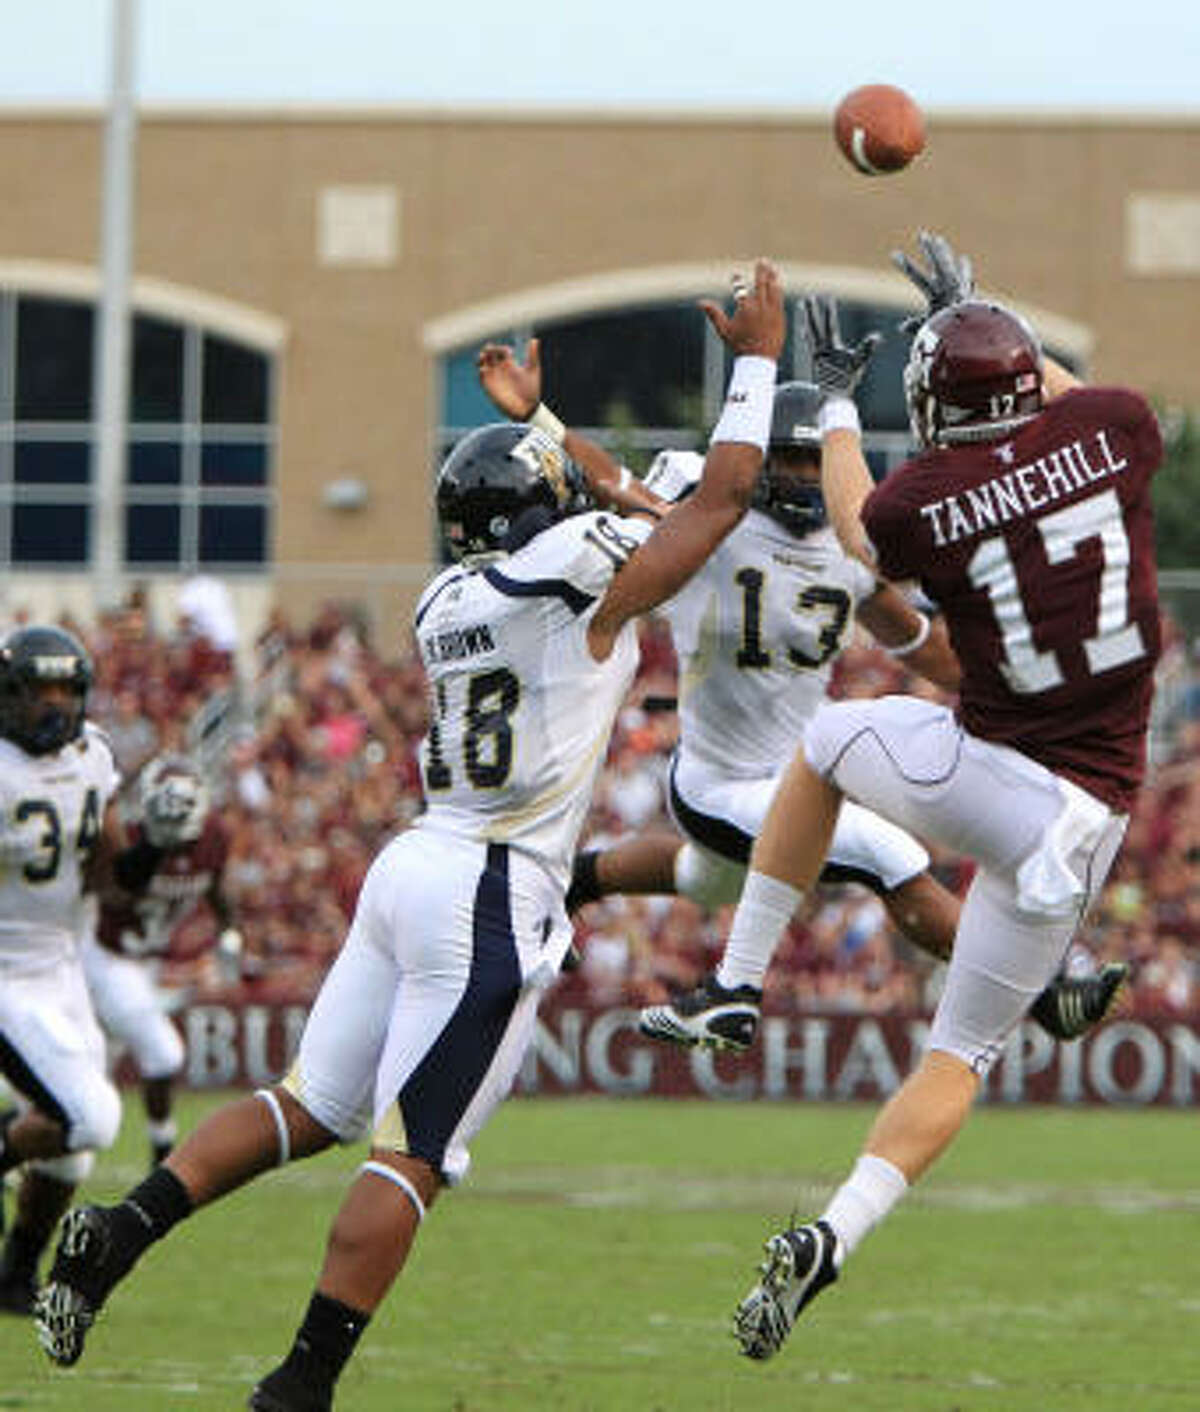 Texas A&M's Ryan Tannehill (17) goes up for a pass as Florida International cornerback Kreg Brown (18) and linebacker Toronto Smith (13) try to defend on the play in the first quarter. Tannehill, however, did not make the catch.